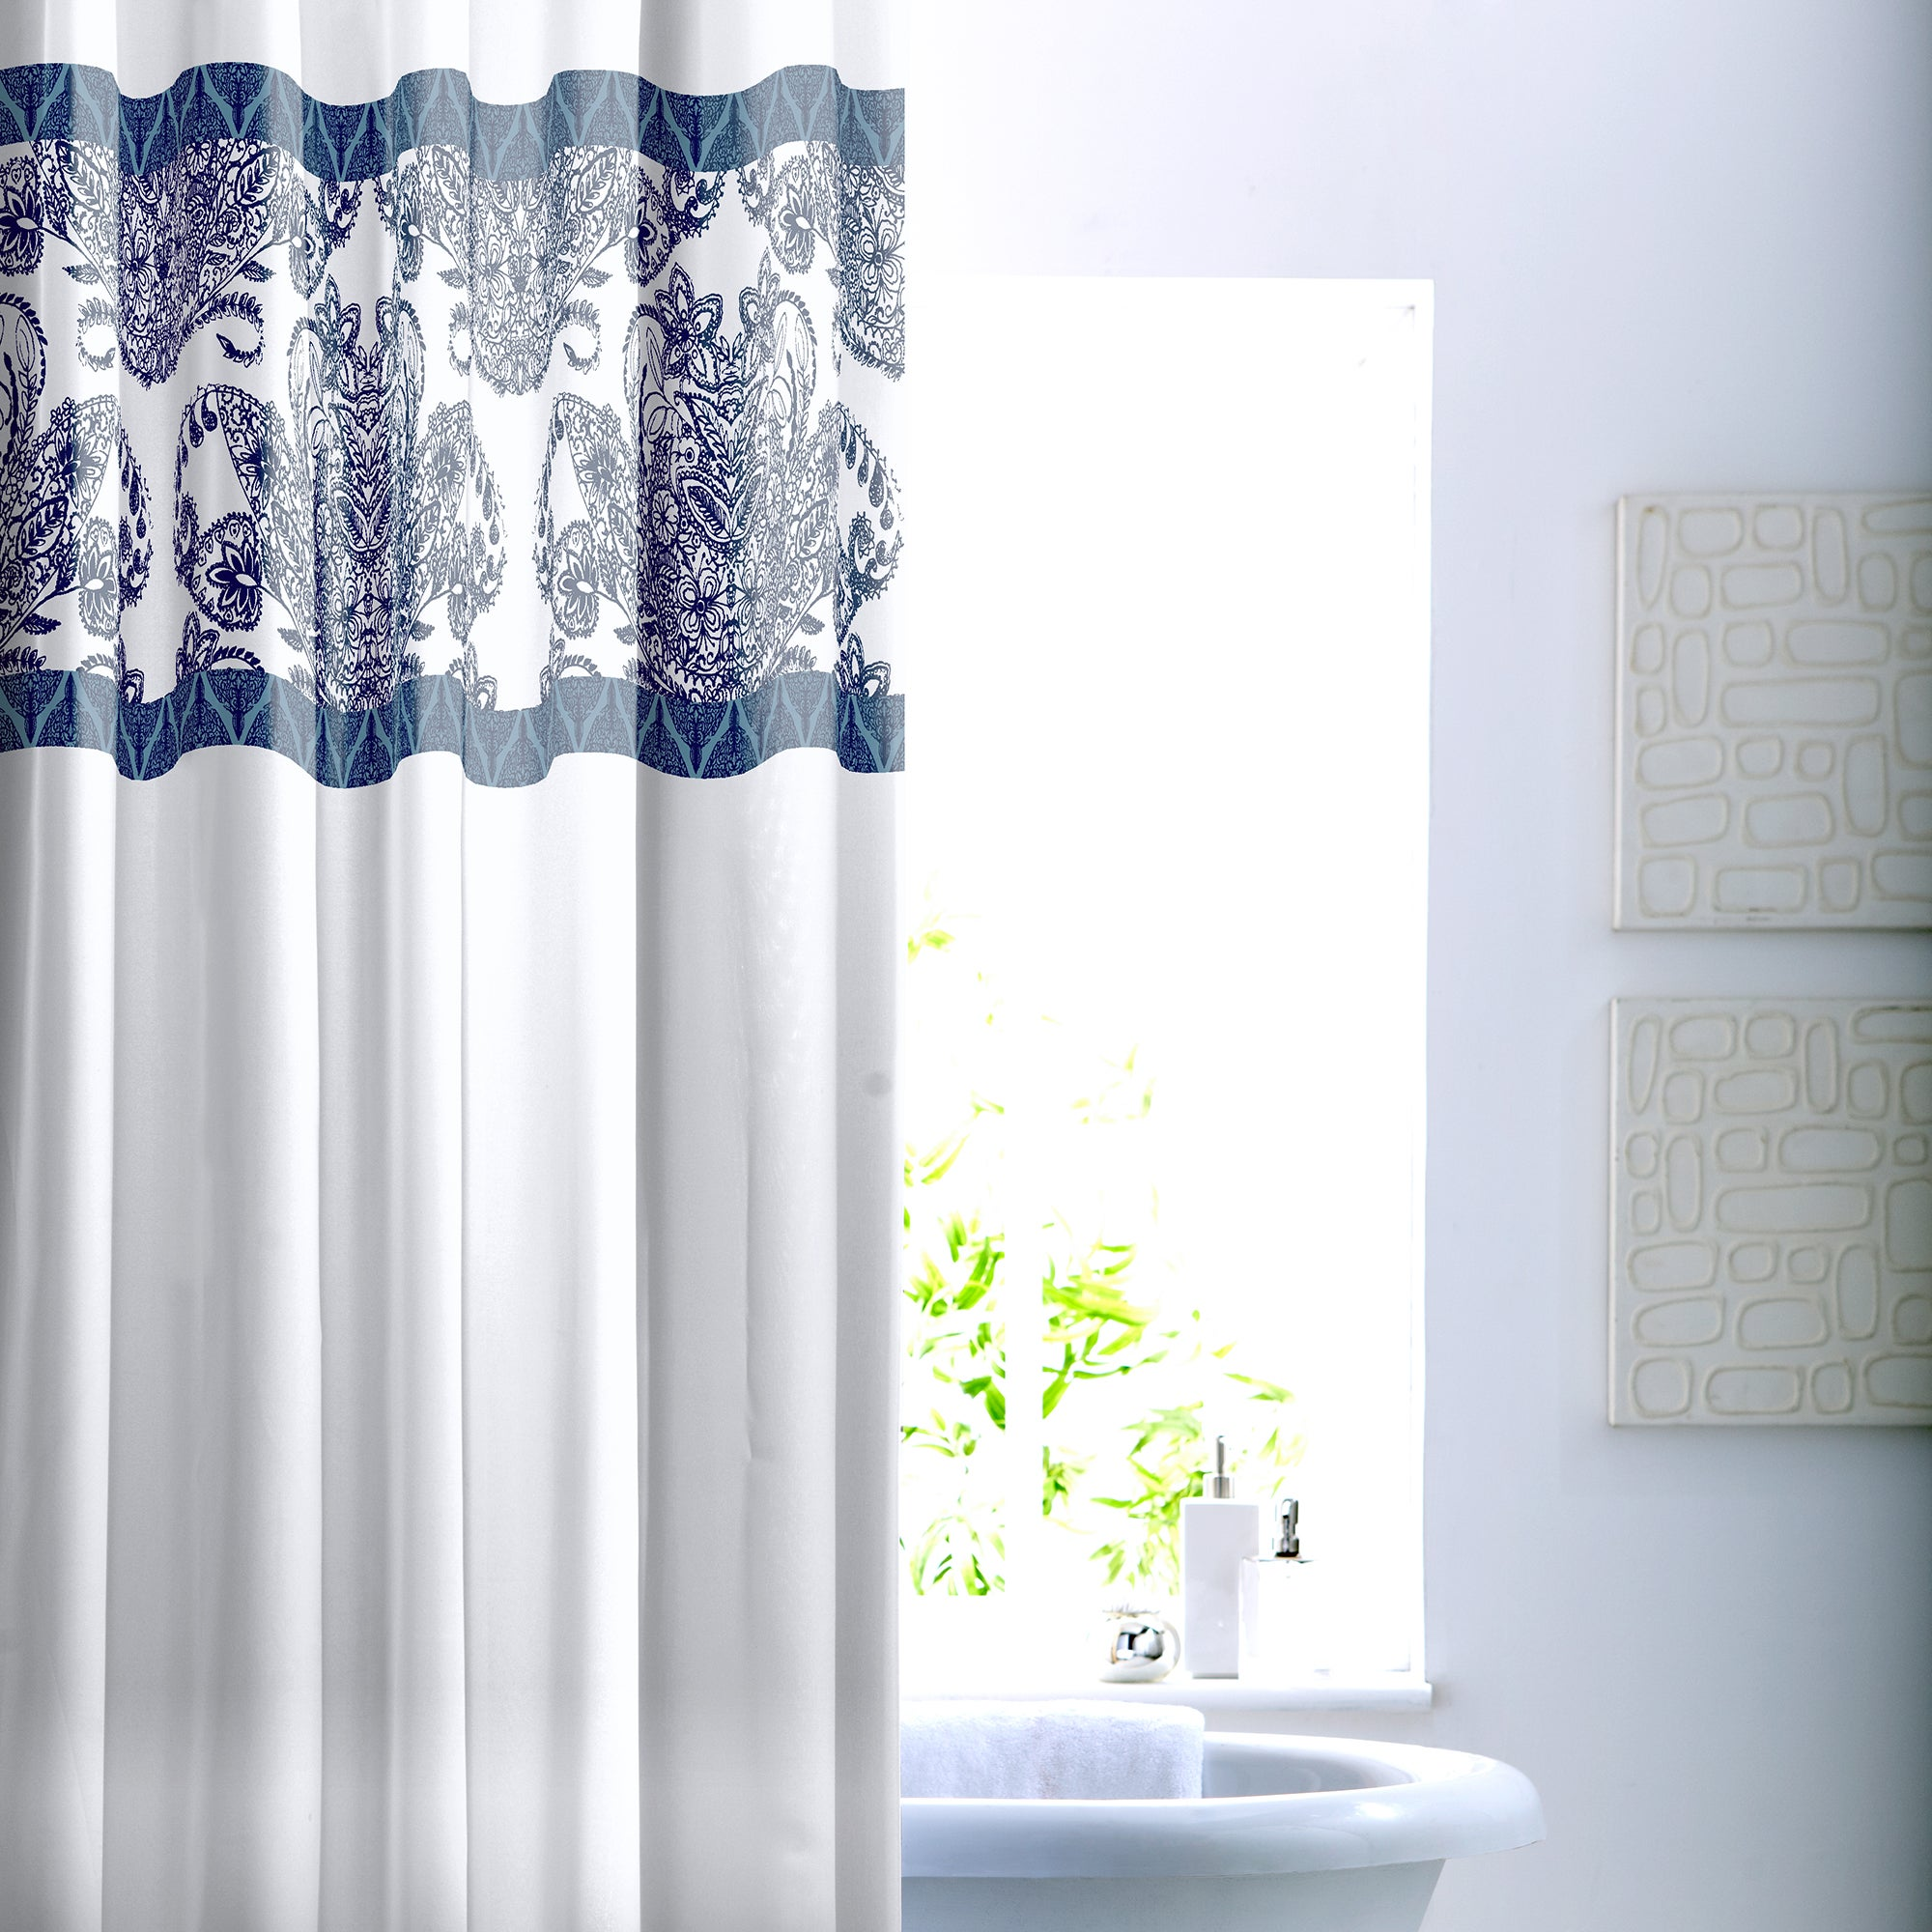 Indigo Bazaar Shower Curtain